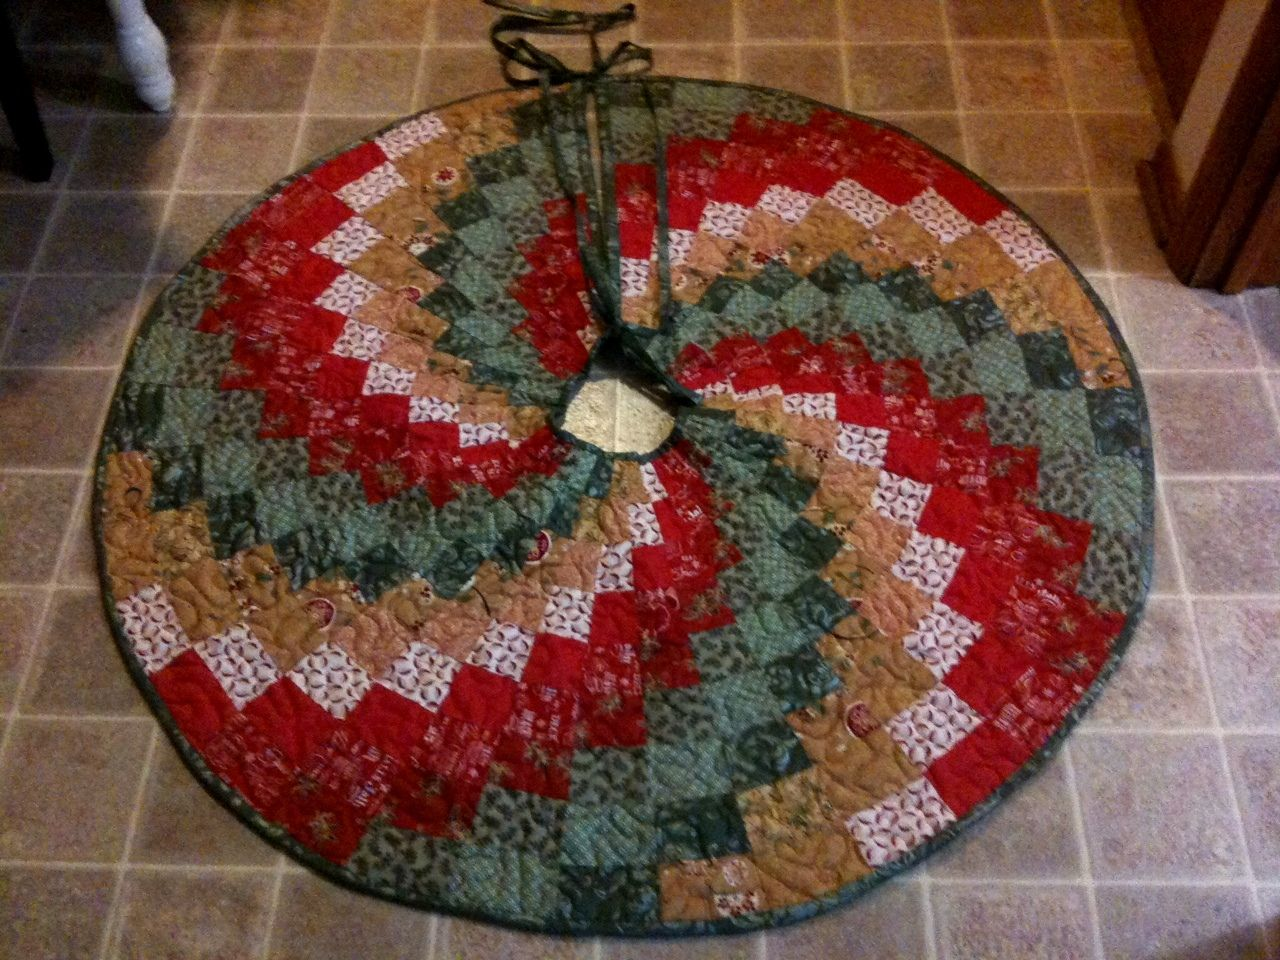 Quilted Christmas Tree Skirt Pinterest : Spiral quilt (tree skirt). This is pretty cool!! NO GOLD BLEHHH :( Crafts Pinterest ...